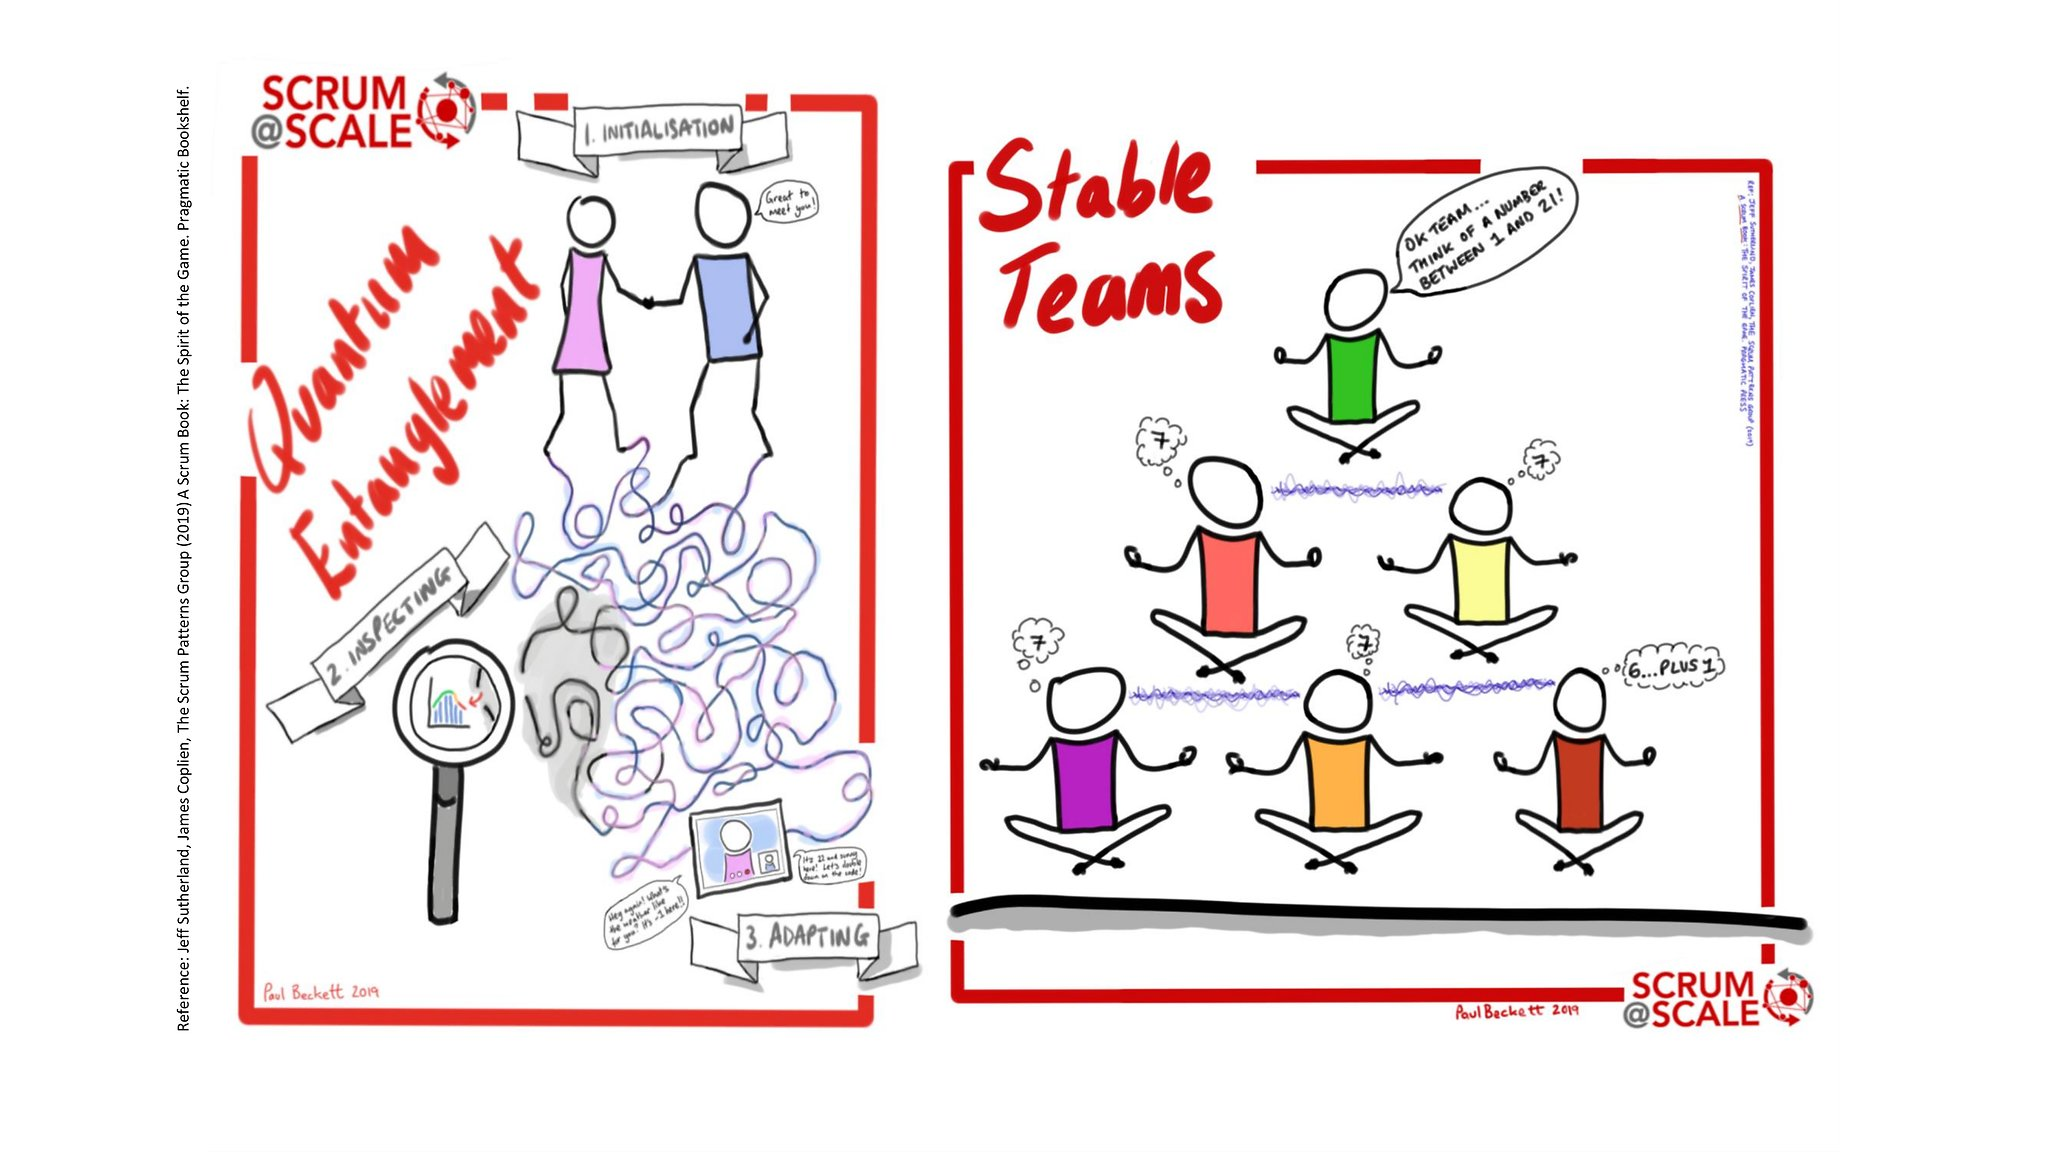 Quantum Entanglement / Stable Teams - Recommended Scrum Patterns - Scrum@Scale